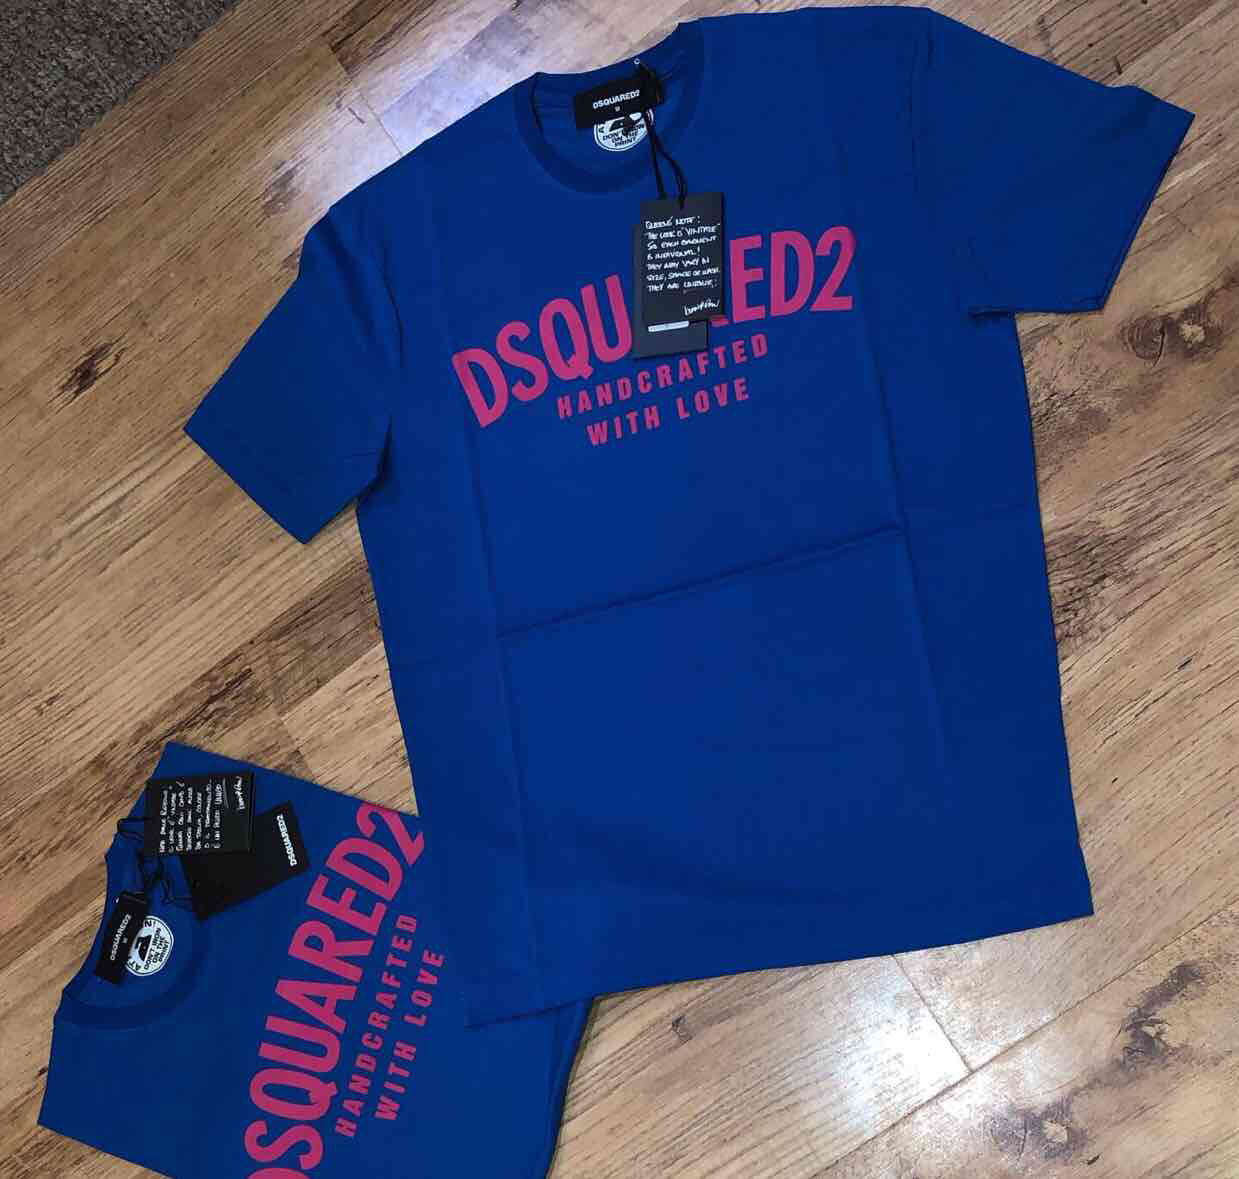 Dsquared2 men's arch logo t-shirt in blue and pink Retail price £160 my price £85. Sizes available M,L,XLDsquared20